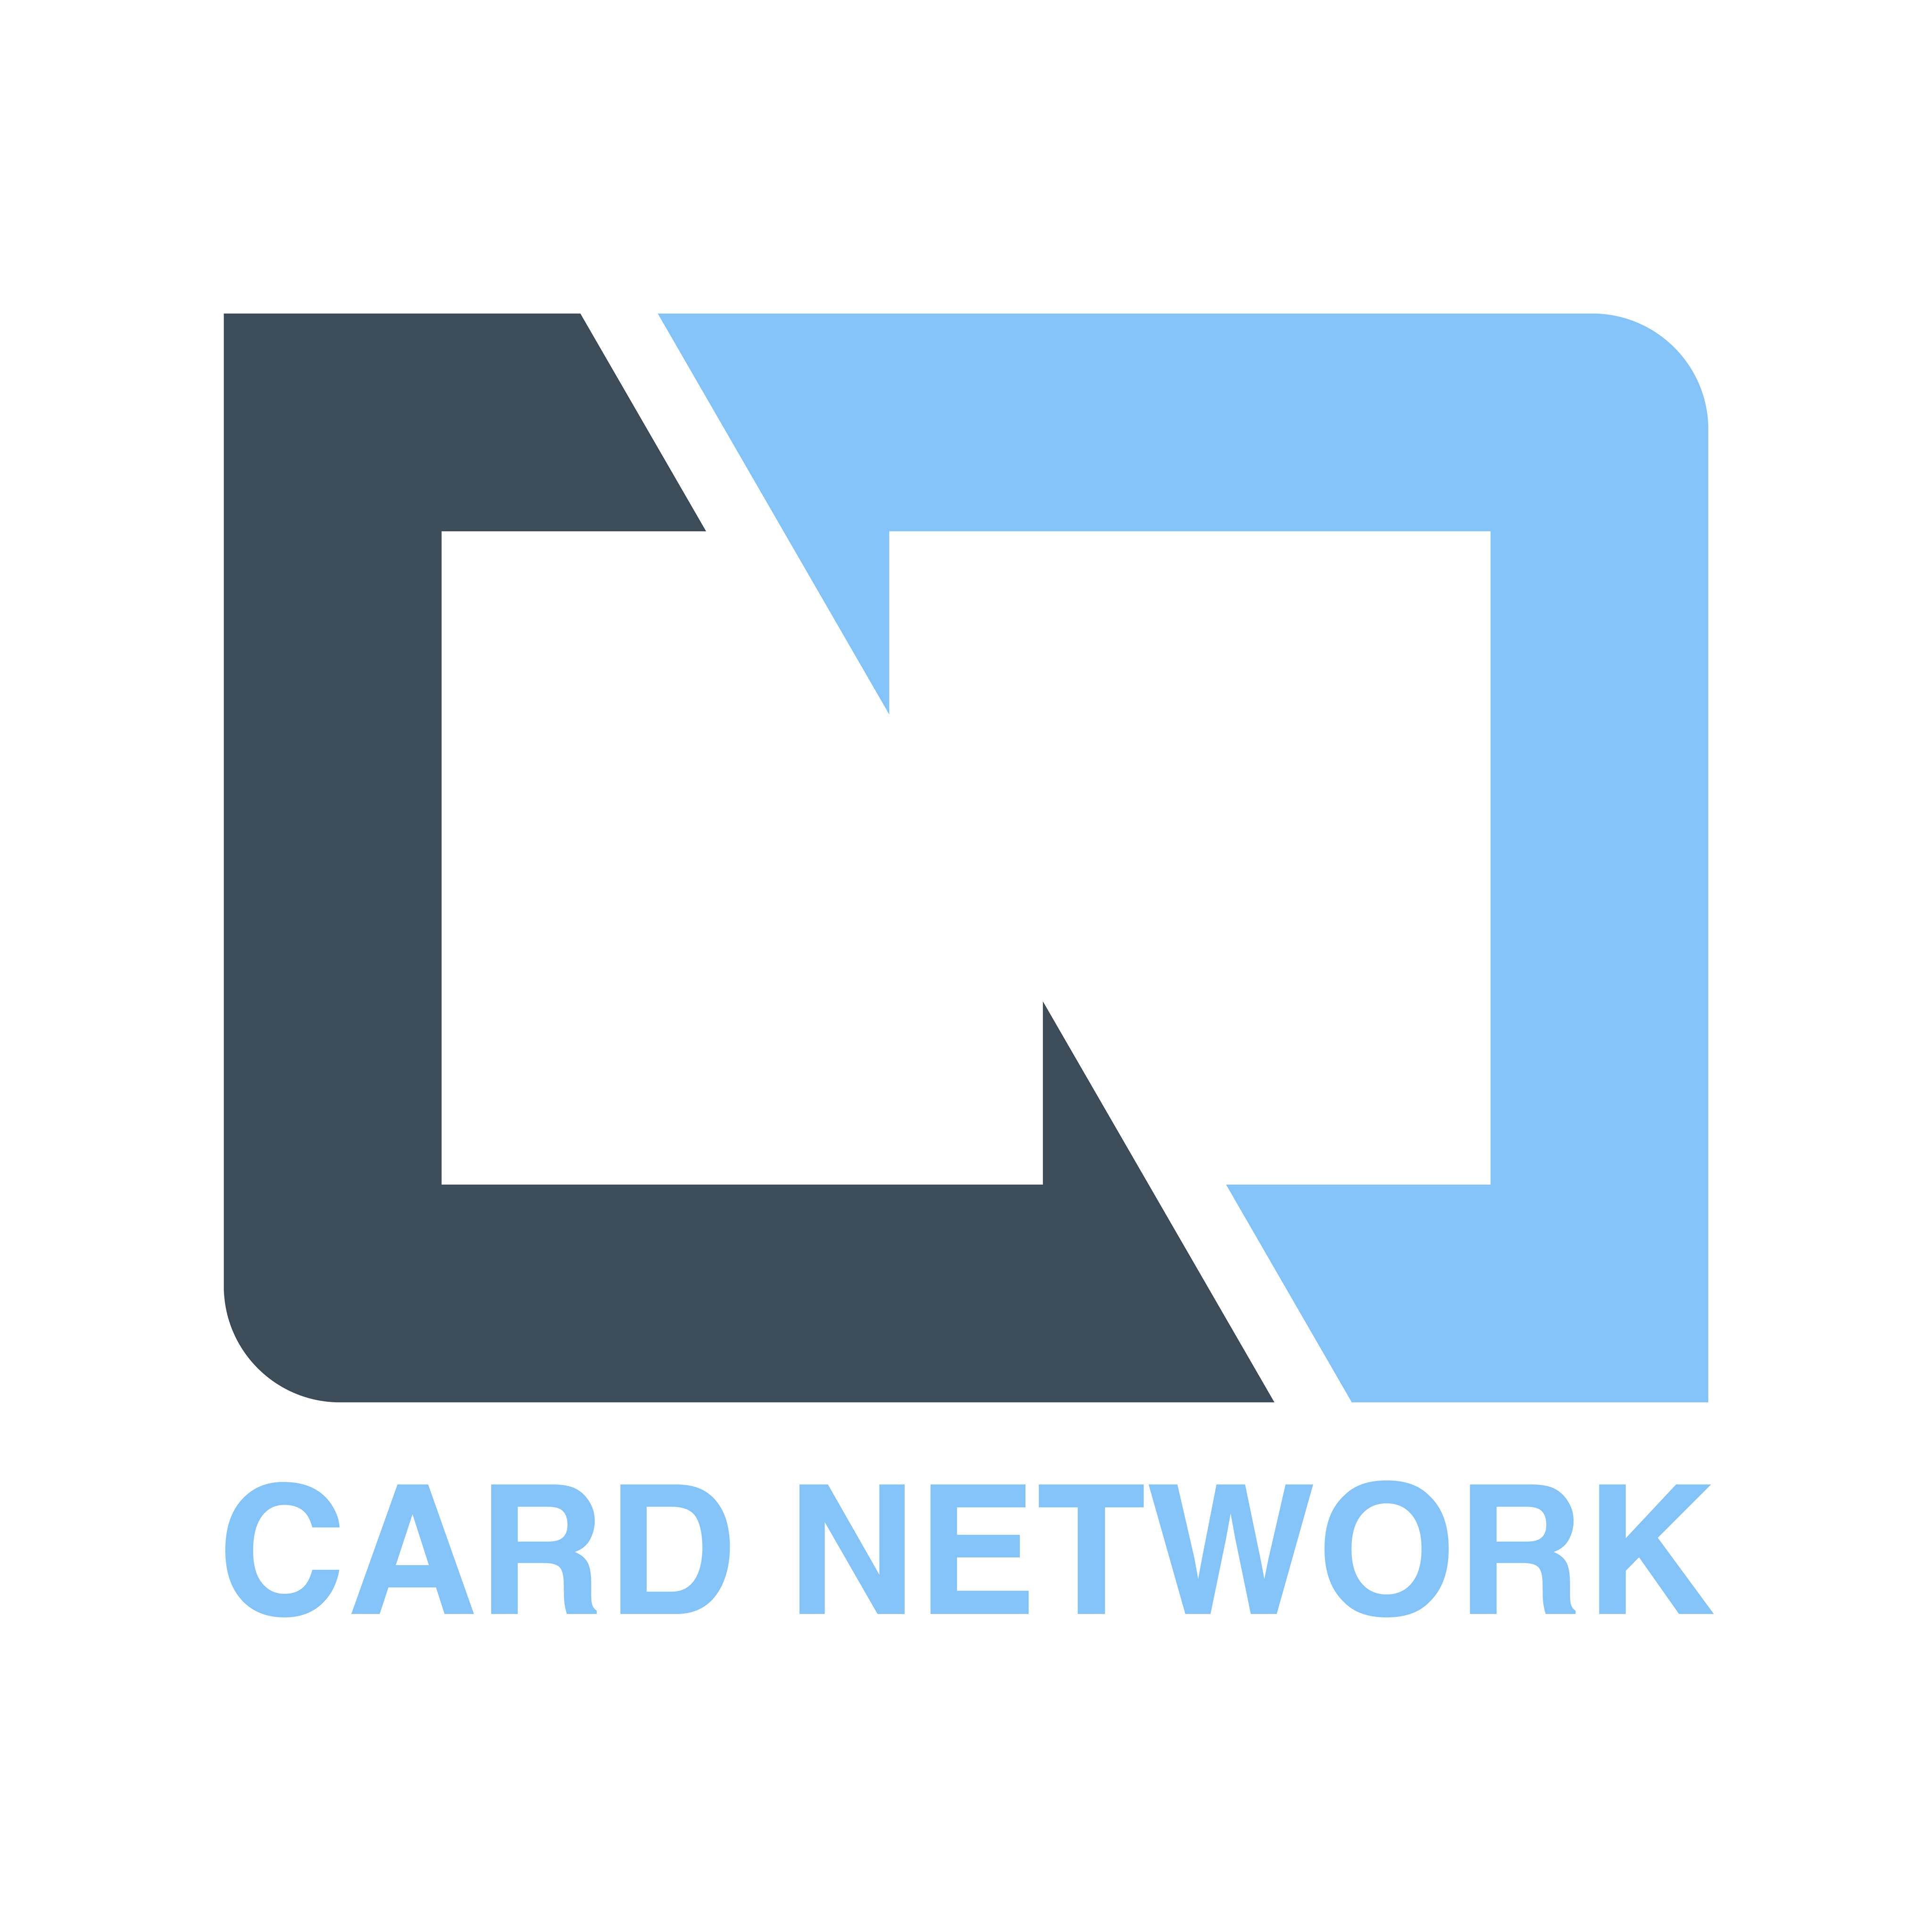 Card Network